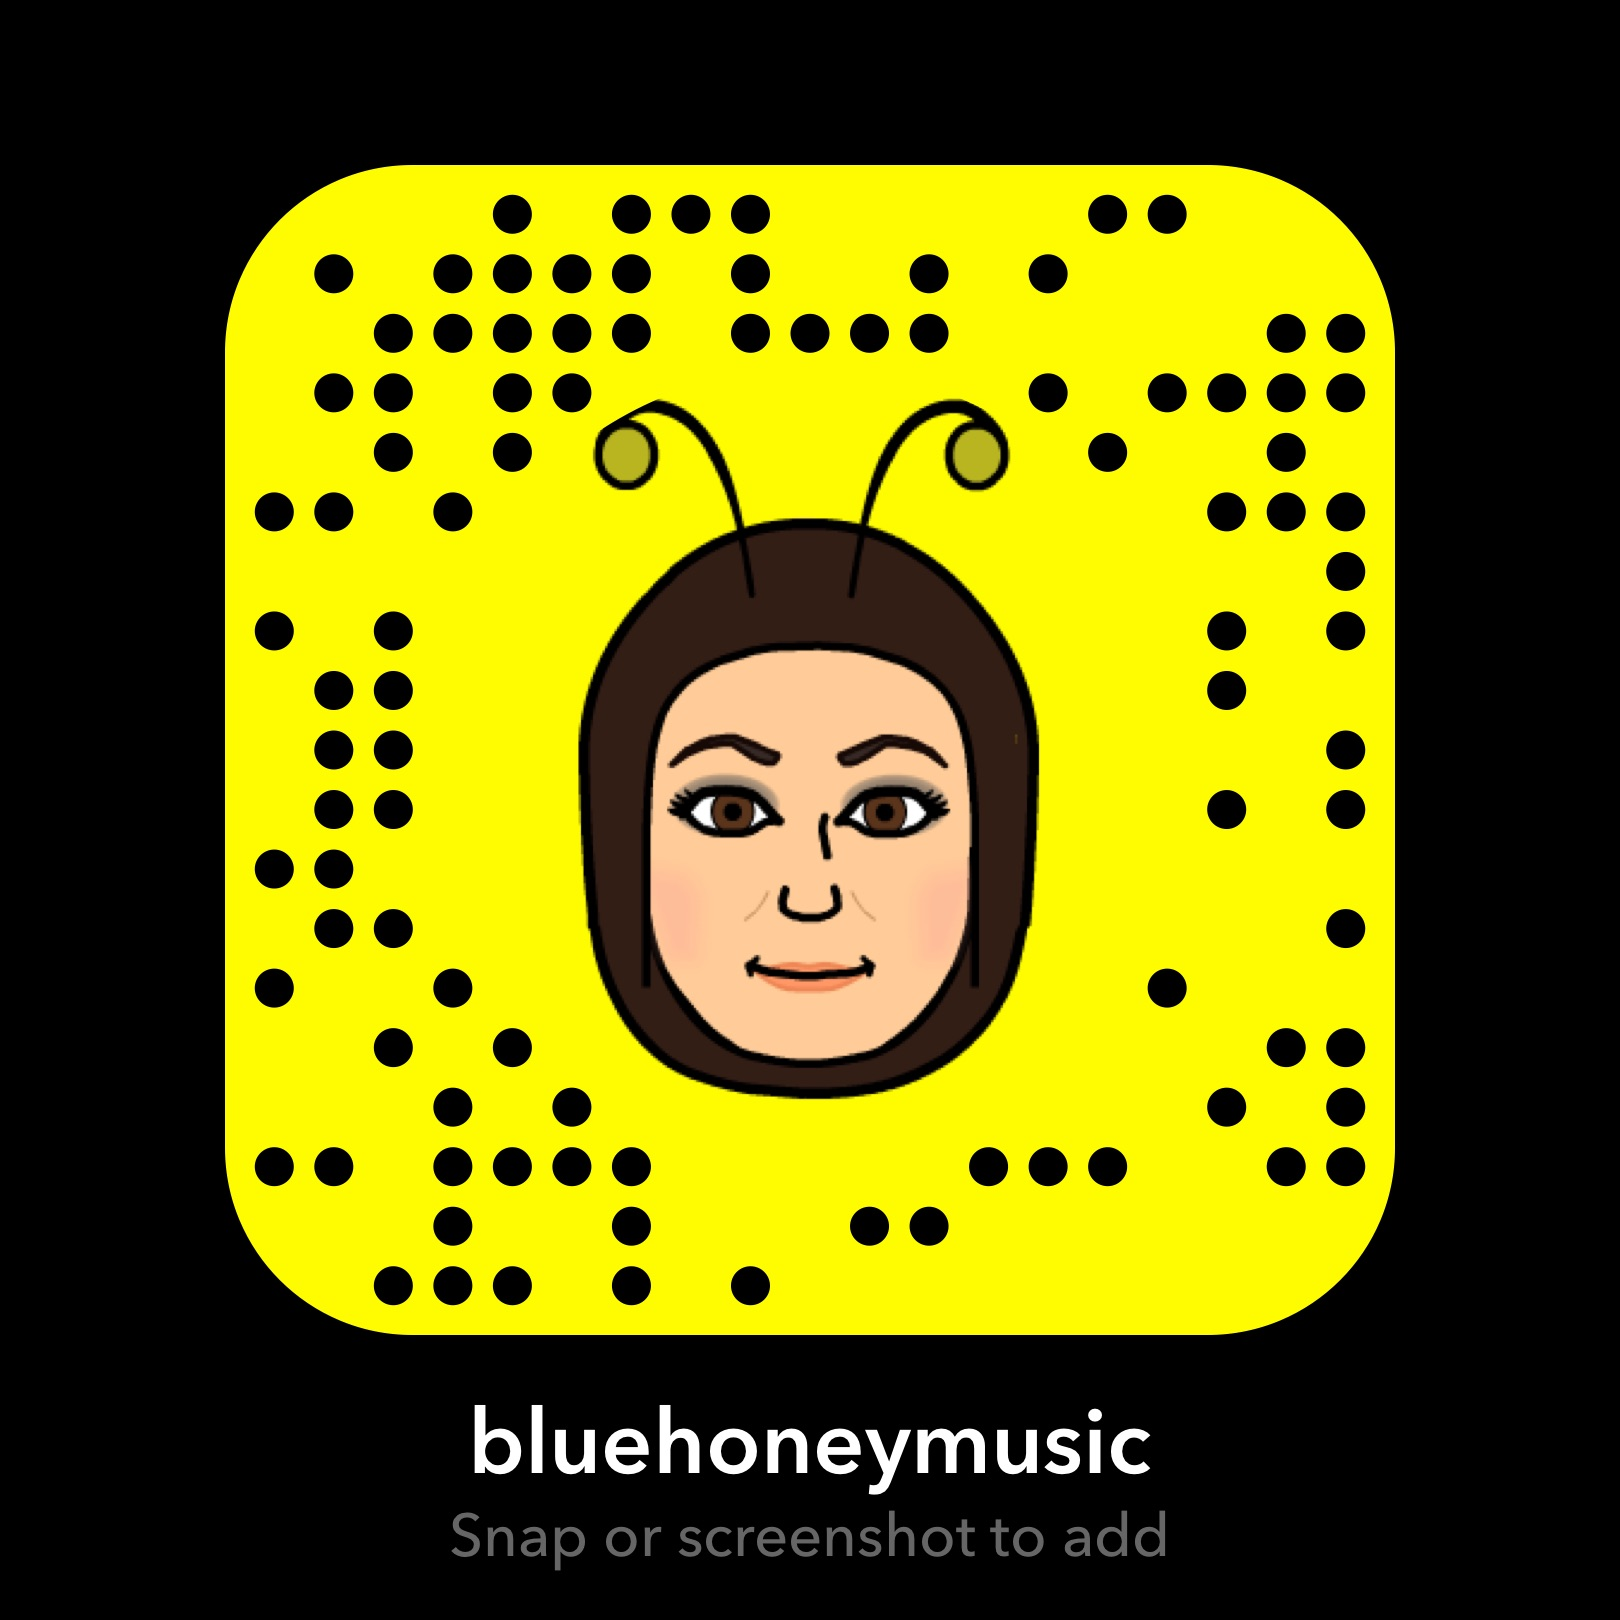 FOLLOW US ON SNAPCHAT! - @bluehoneymusic